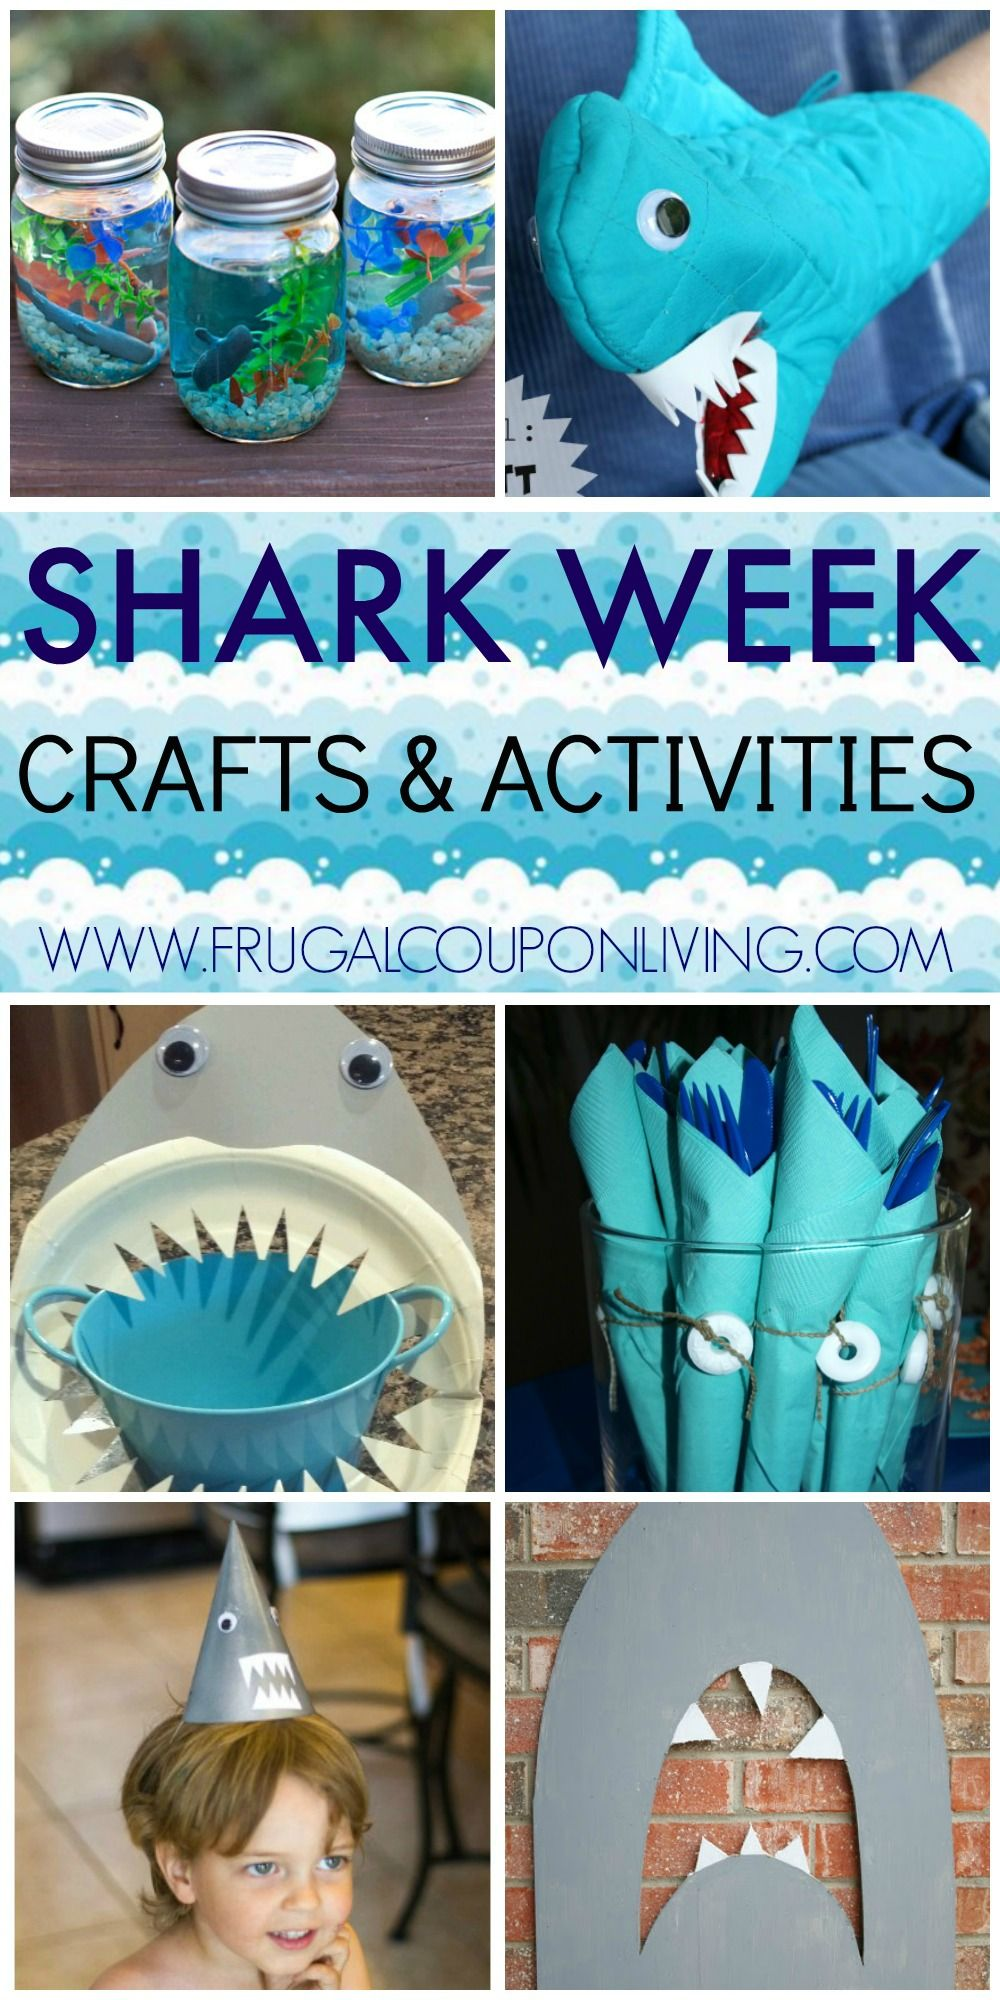 Shark Week Ideas for Kids #sharkweekfood